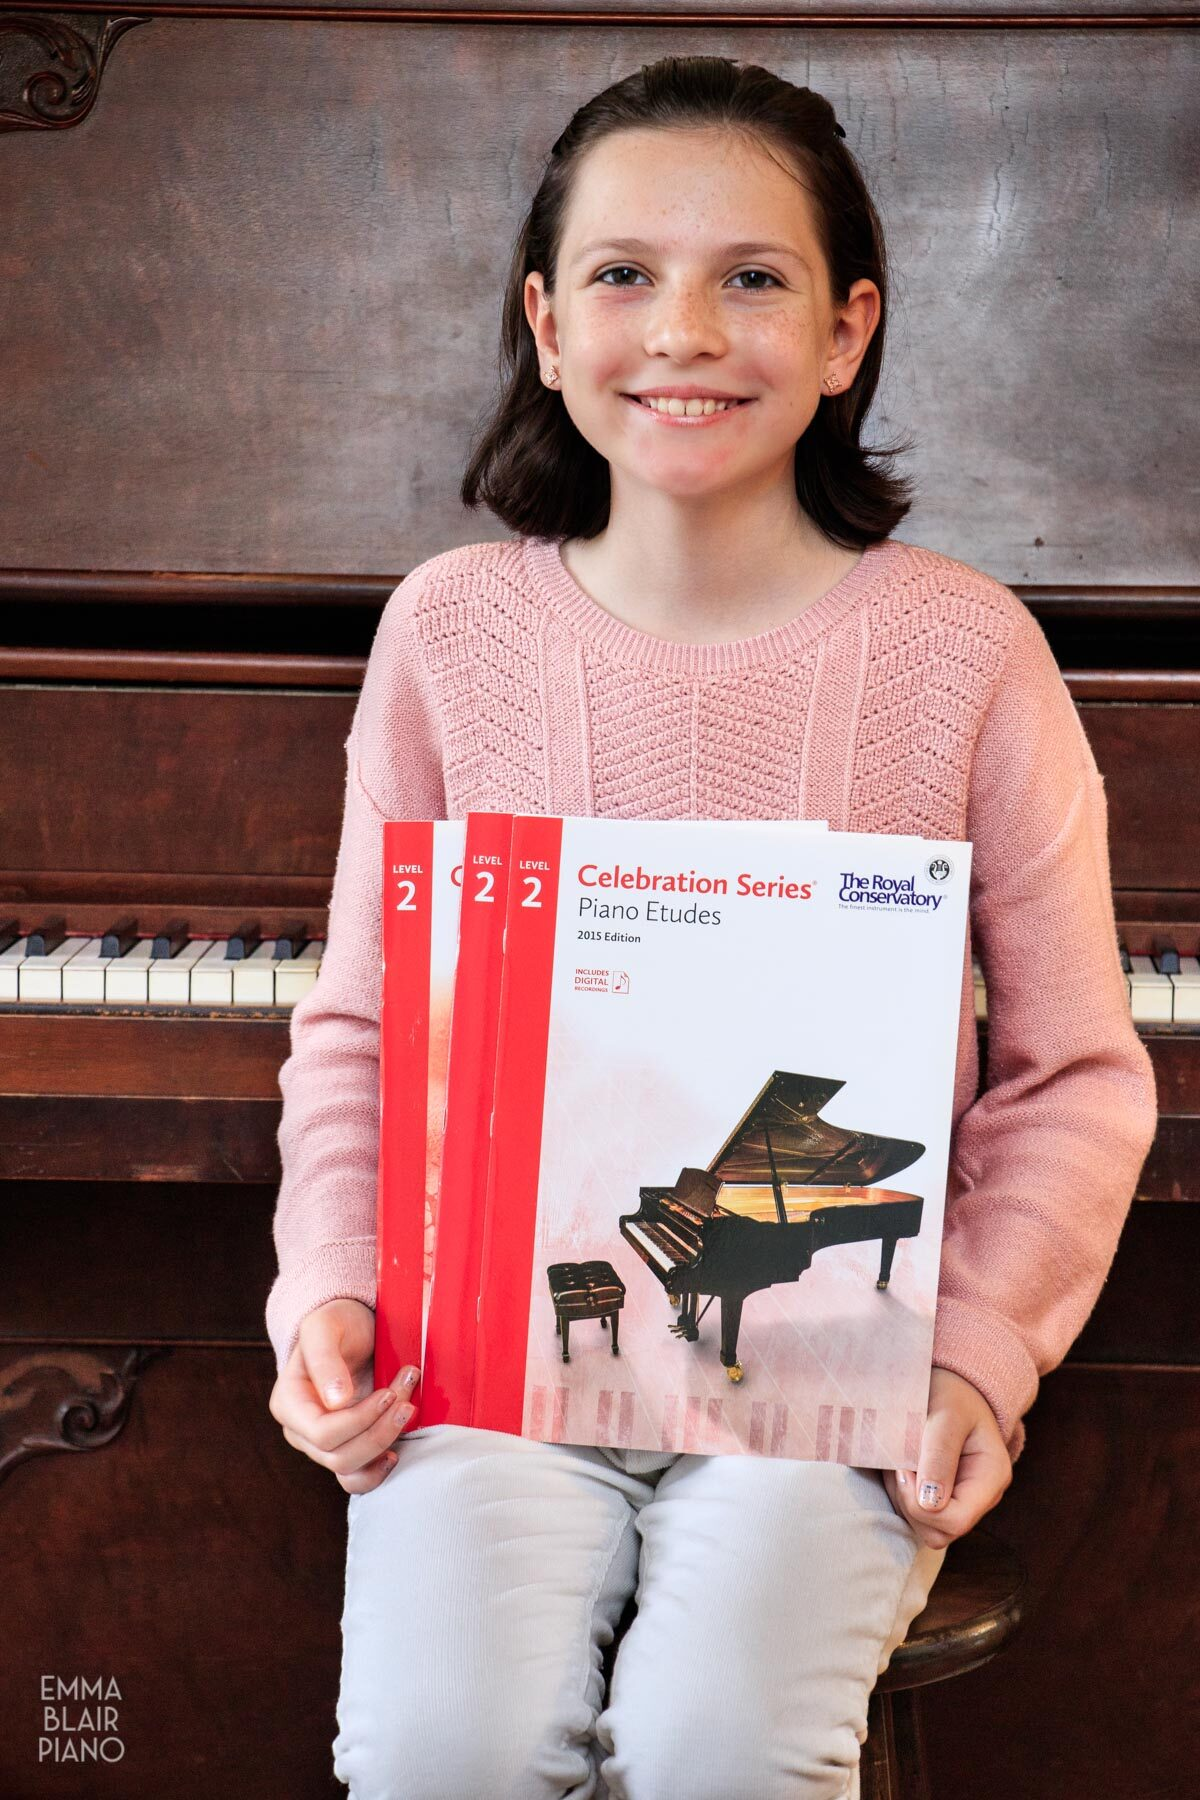 smiling girl holding music books in front of the piano